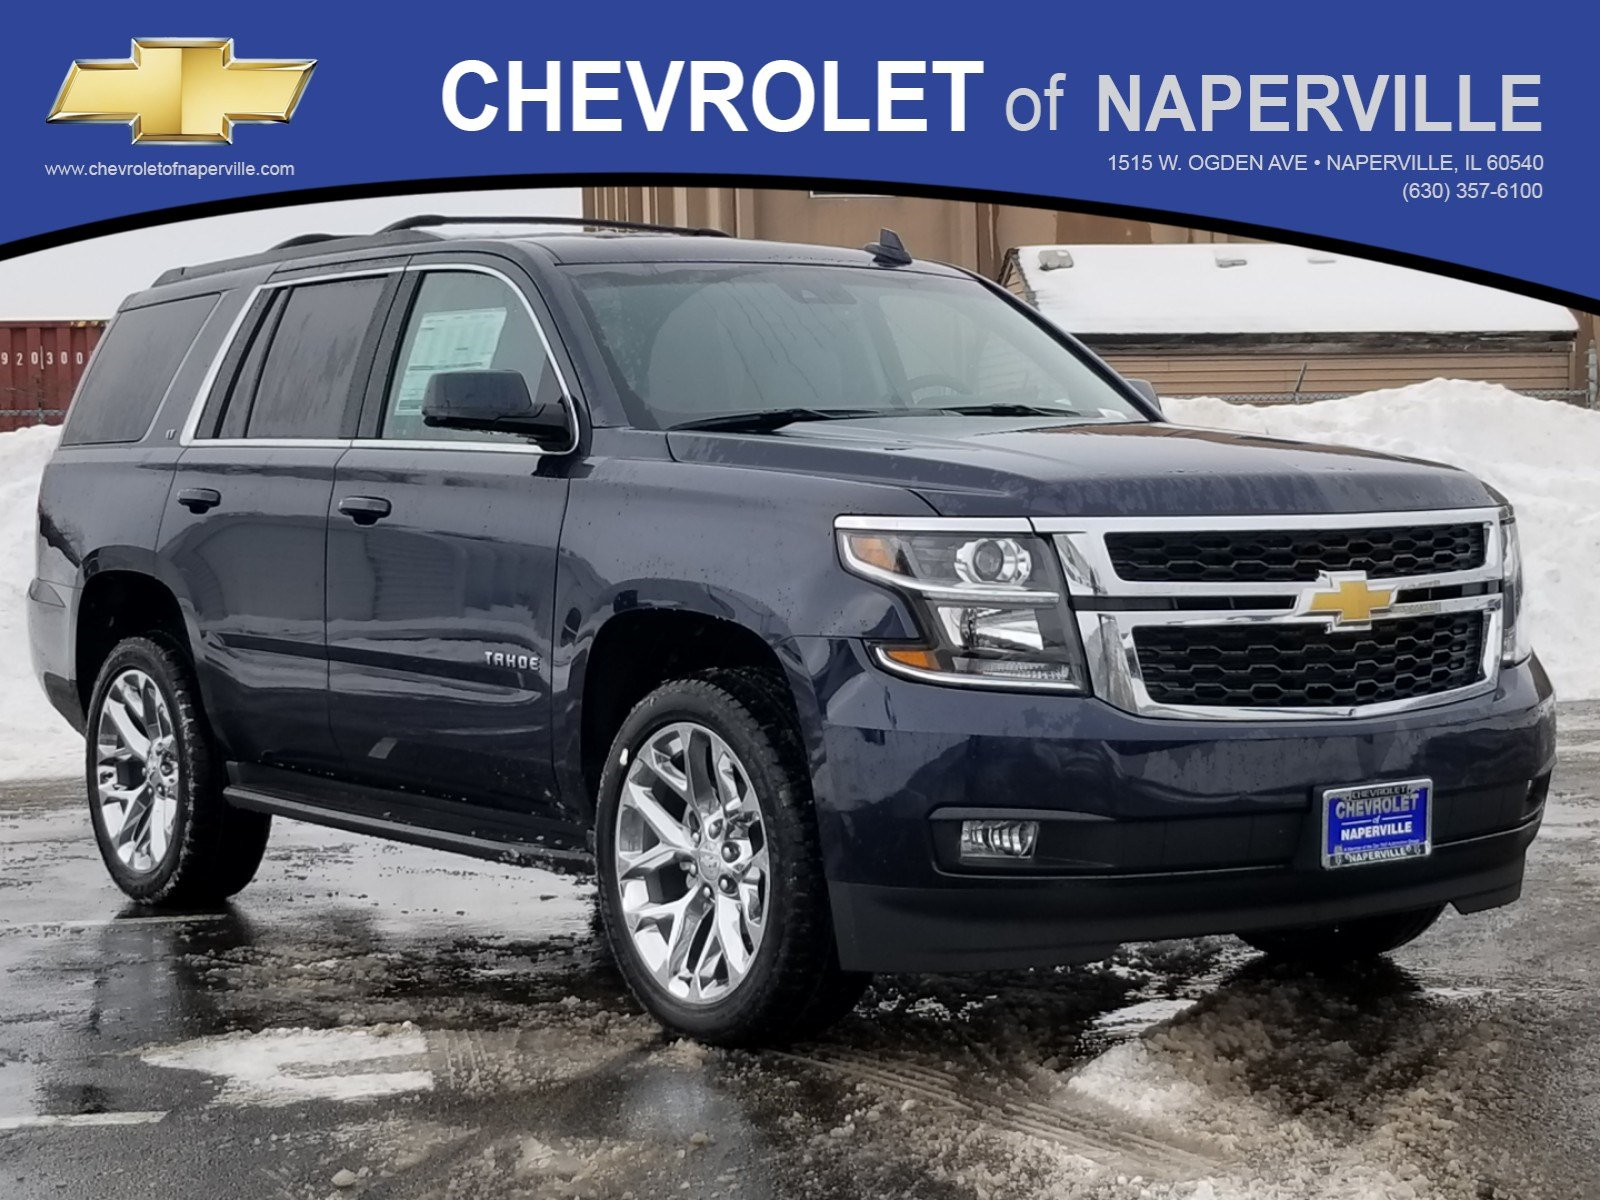 New 2019 Chevrolet Tahoe Lt Sport Utility In Naperville T9532